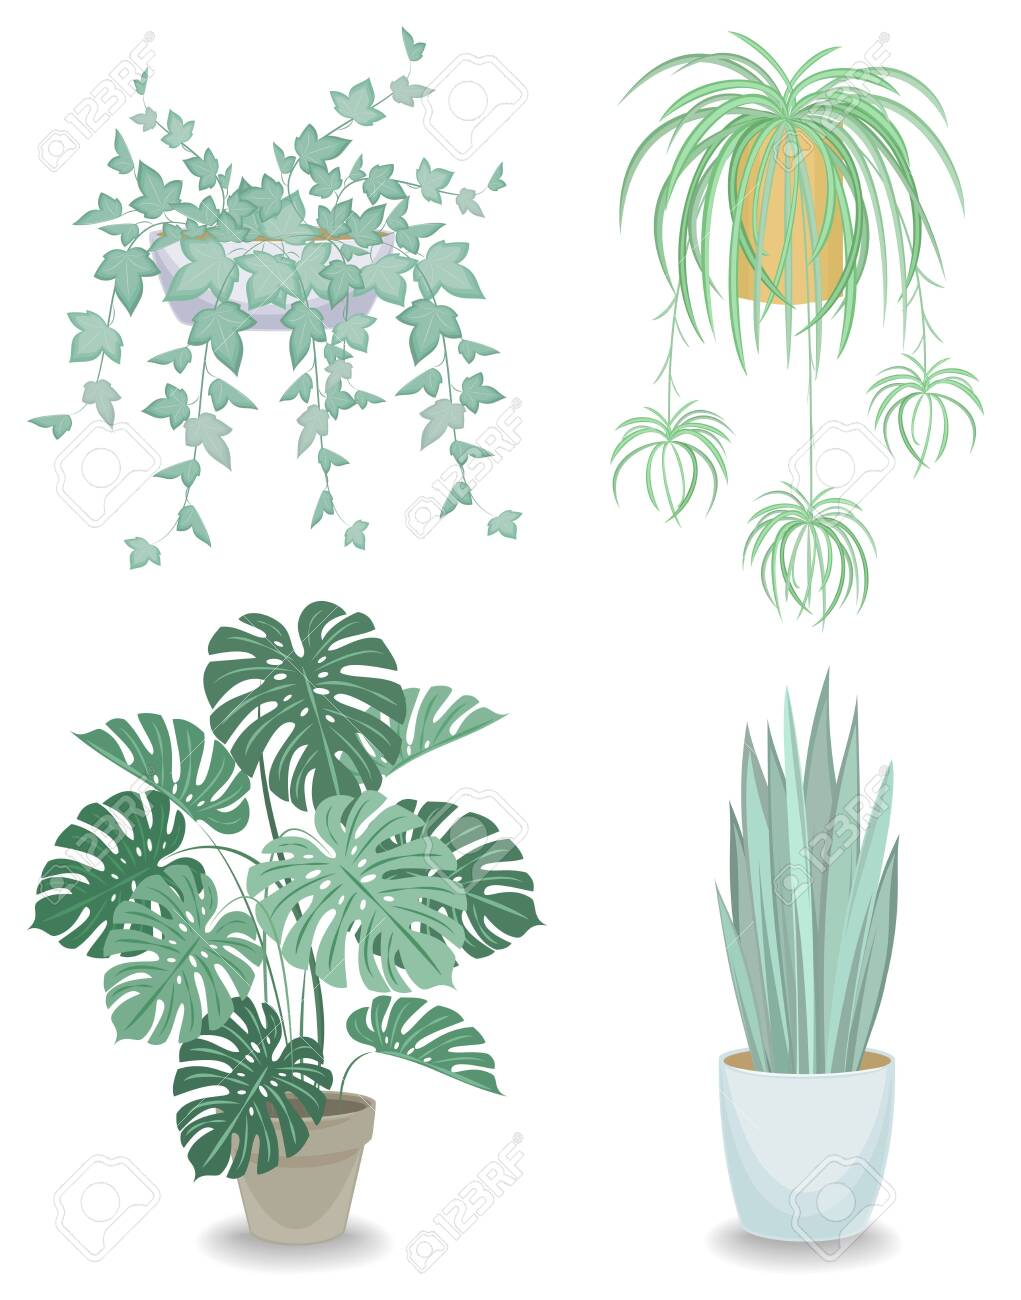 Collection. Indoor plant in a pot. Chlorophytum, monster, sansevieria, ivy. Beautiful decorative flowerpot. Vector illustration of a set - 149664138